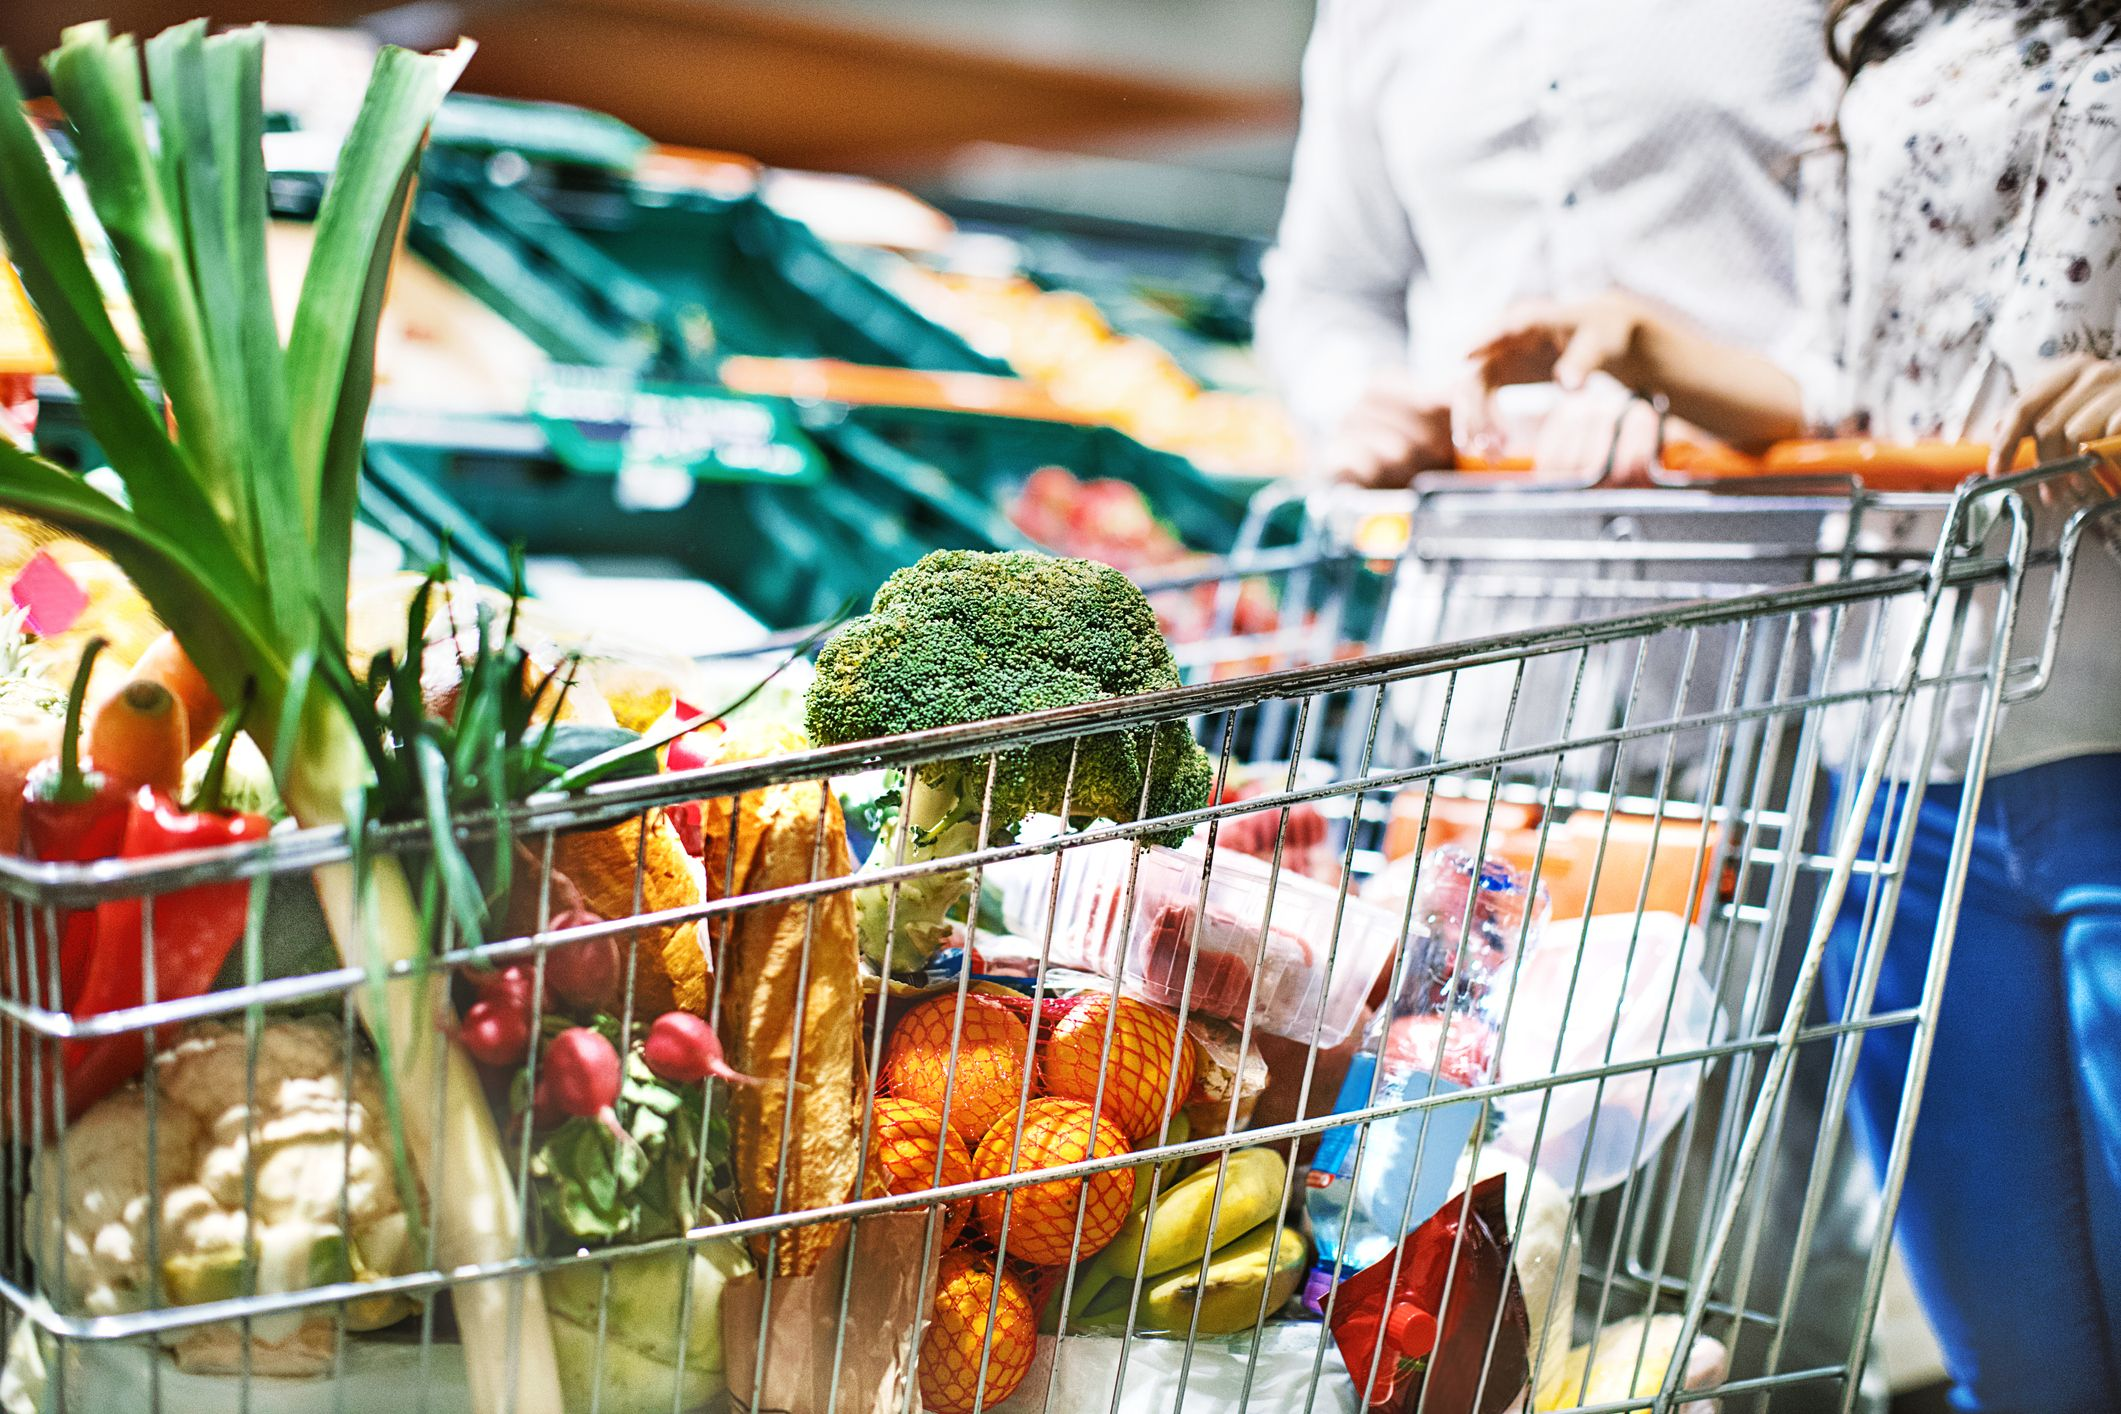 The 10 Healthiest Grocery Stores In The U.S., Per Nutritionists